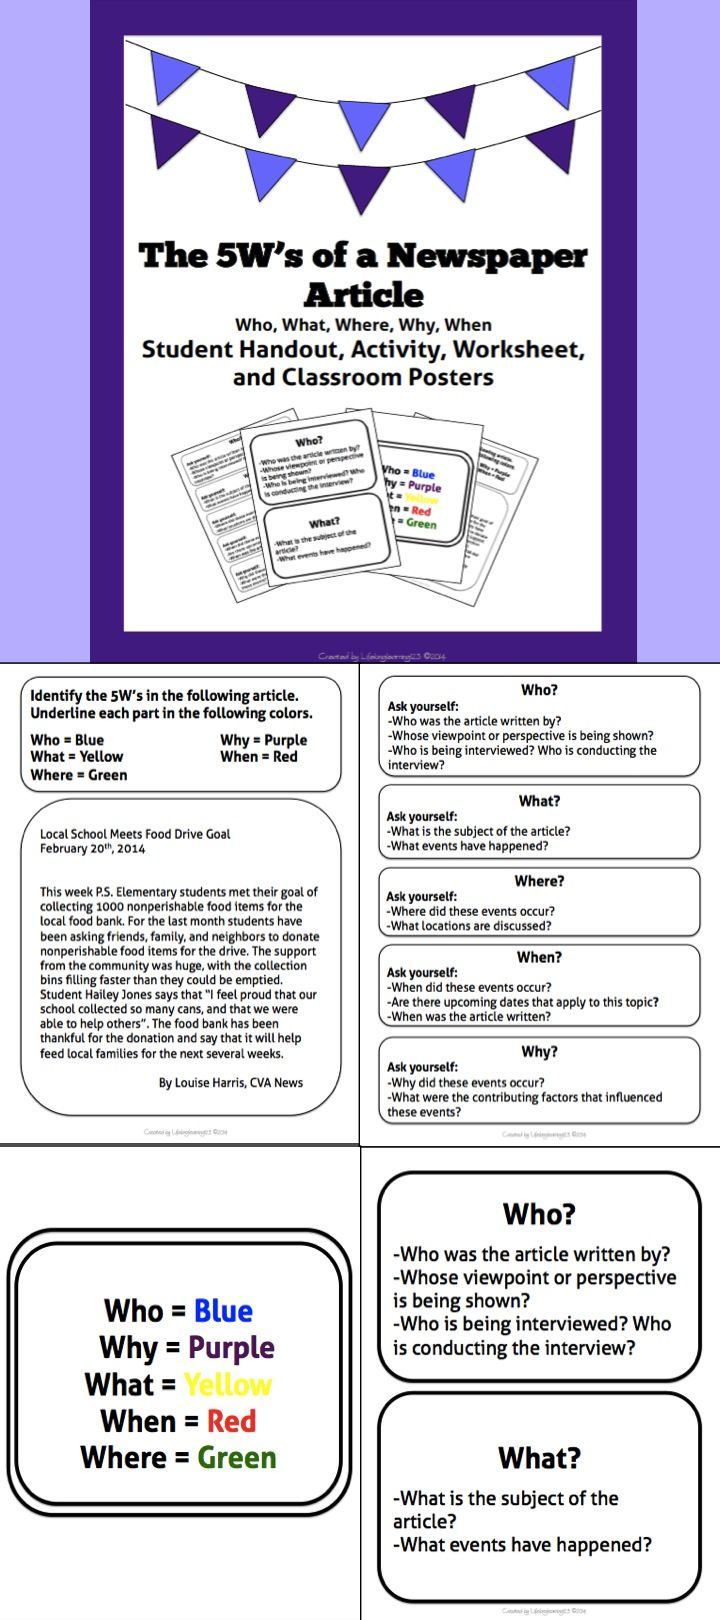 Great middle school newspaper template gallery entry level template for school newsletter elementary newsletter templates write a middle school newspaper article knowneverywhere saigontimesfo